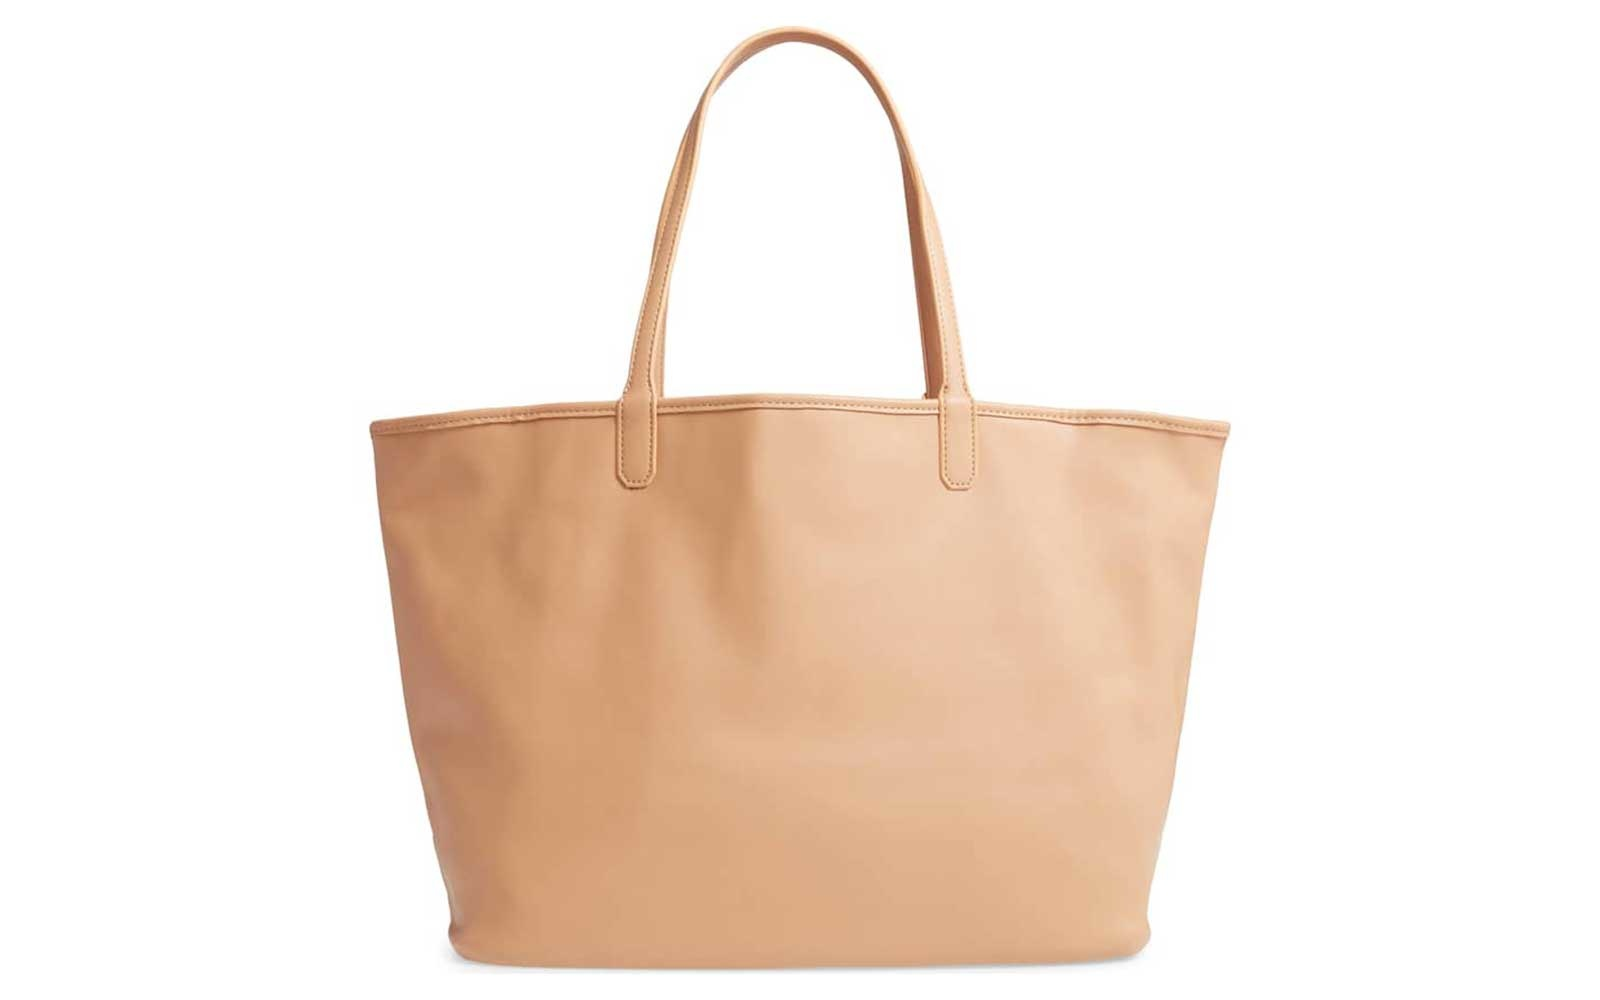 Mali and Lily vegan tote